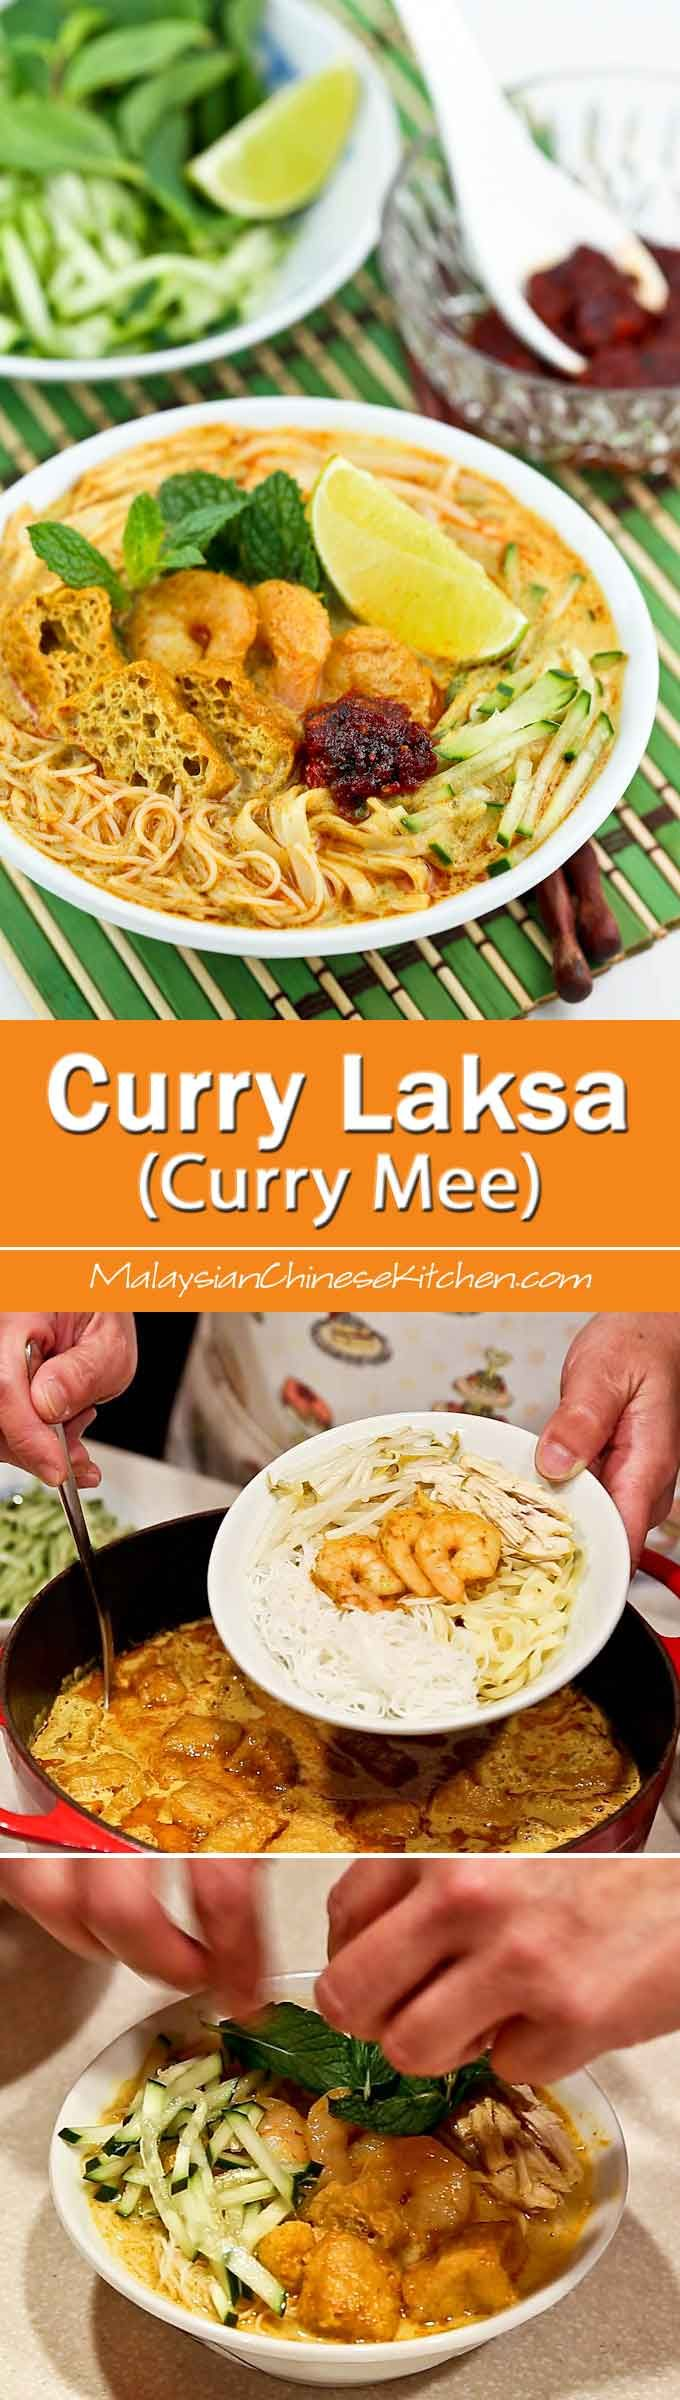 Curry Laksa (Curry Mee) is a delicious spicy curried noodle soup with a variety of toppings. This is my family's version found mainly in the Klang Valley and its surrounding areas. | MalaysianChineseKitchen.com